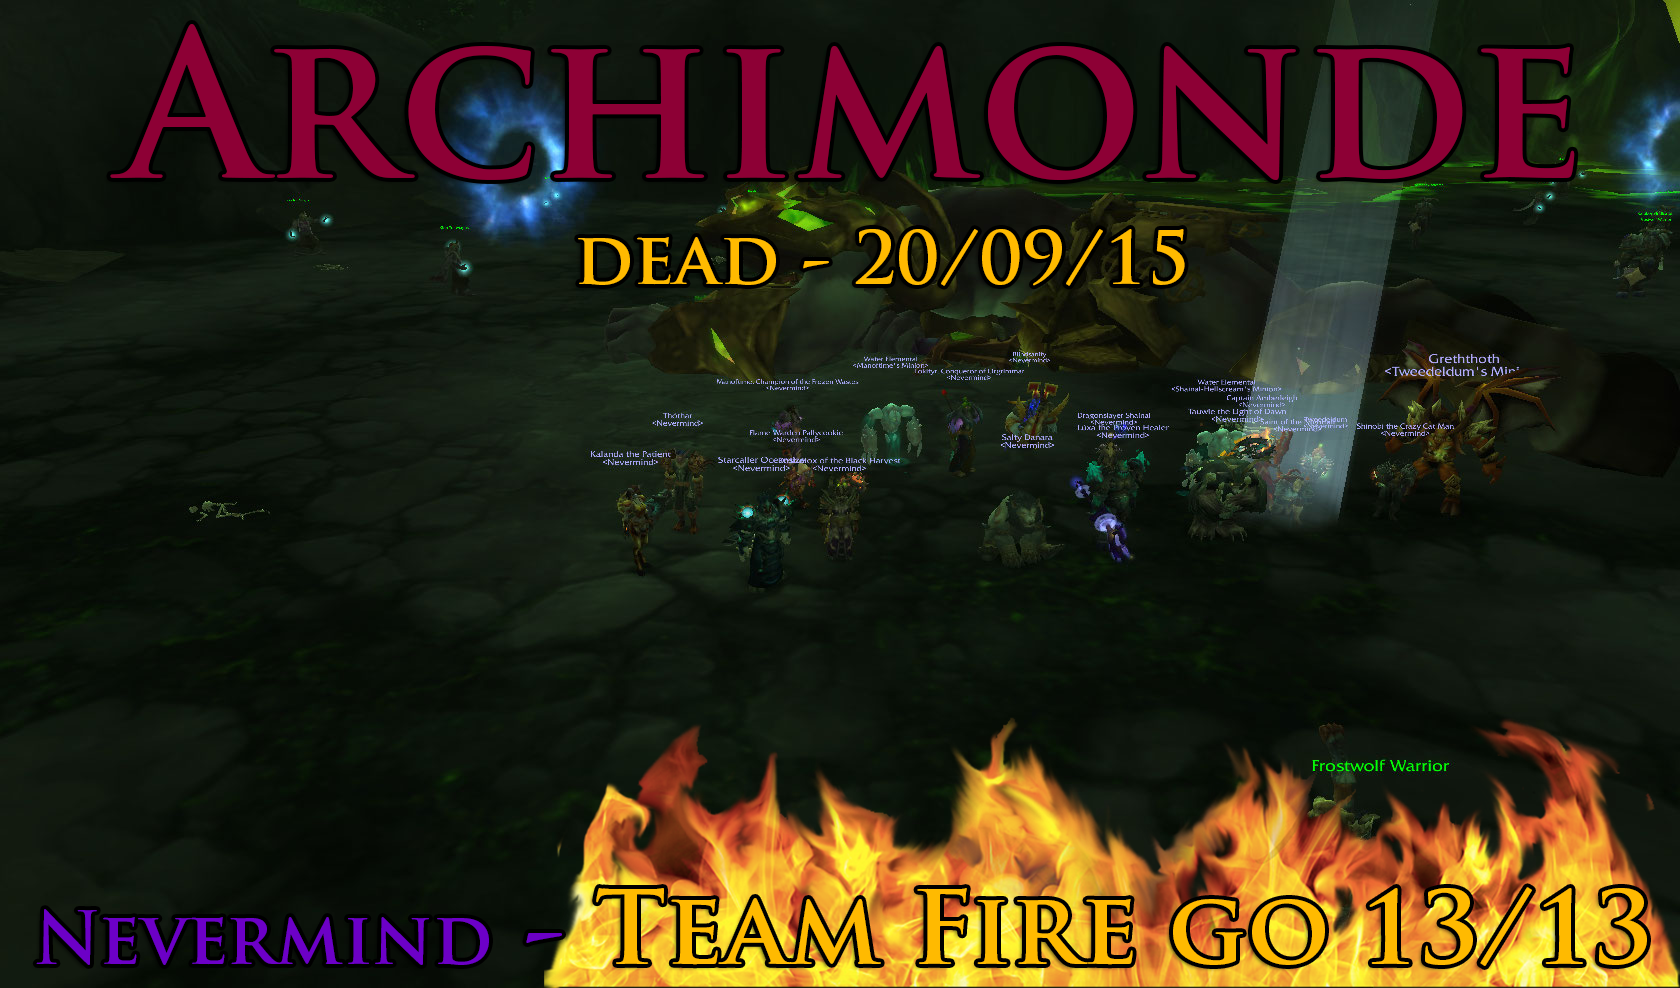 ARCHIMONDE IS DEAD! – Team Fire and Nevermind go 13/13 HFC